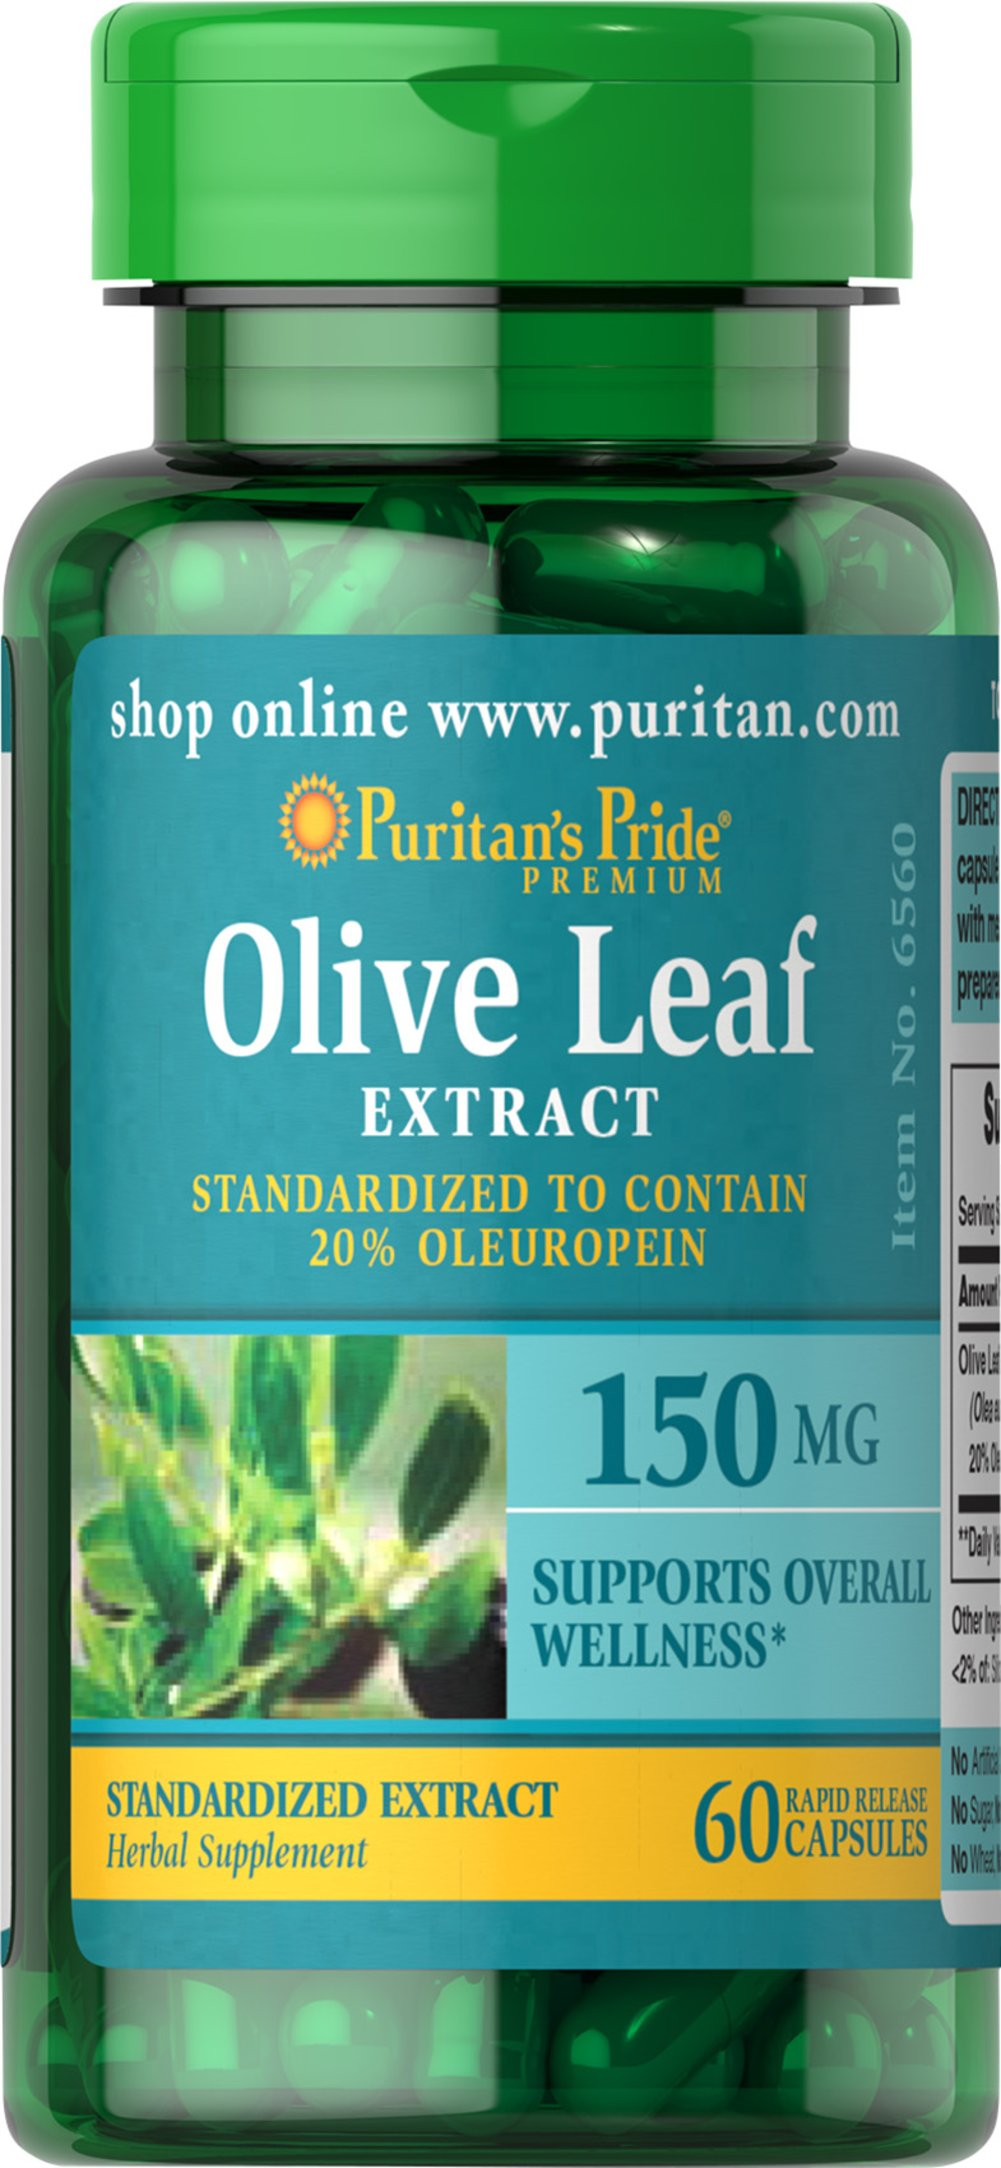 Olive Leaf Standardized Extract 150 mg <p>Our Olive Leaf Extract is derived from the leaves of the Mediterranean olive tree. This extract is standardized for 20% Oleuropein, a powerful phytonutrient. Olive leaves have been used for overall well-being for thousands of years by people in countries bordering the Mediterranean.</p> 60 Capsules 150 mg $10.99